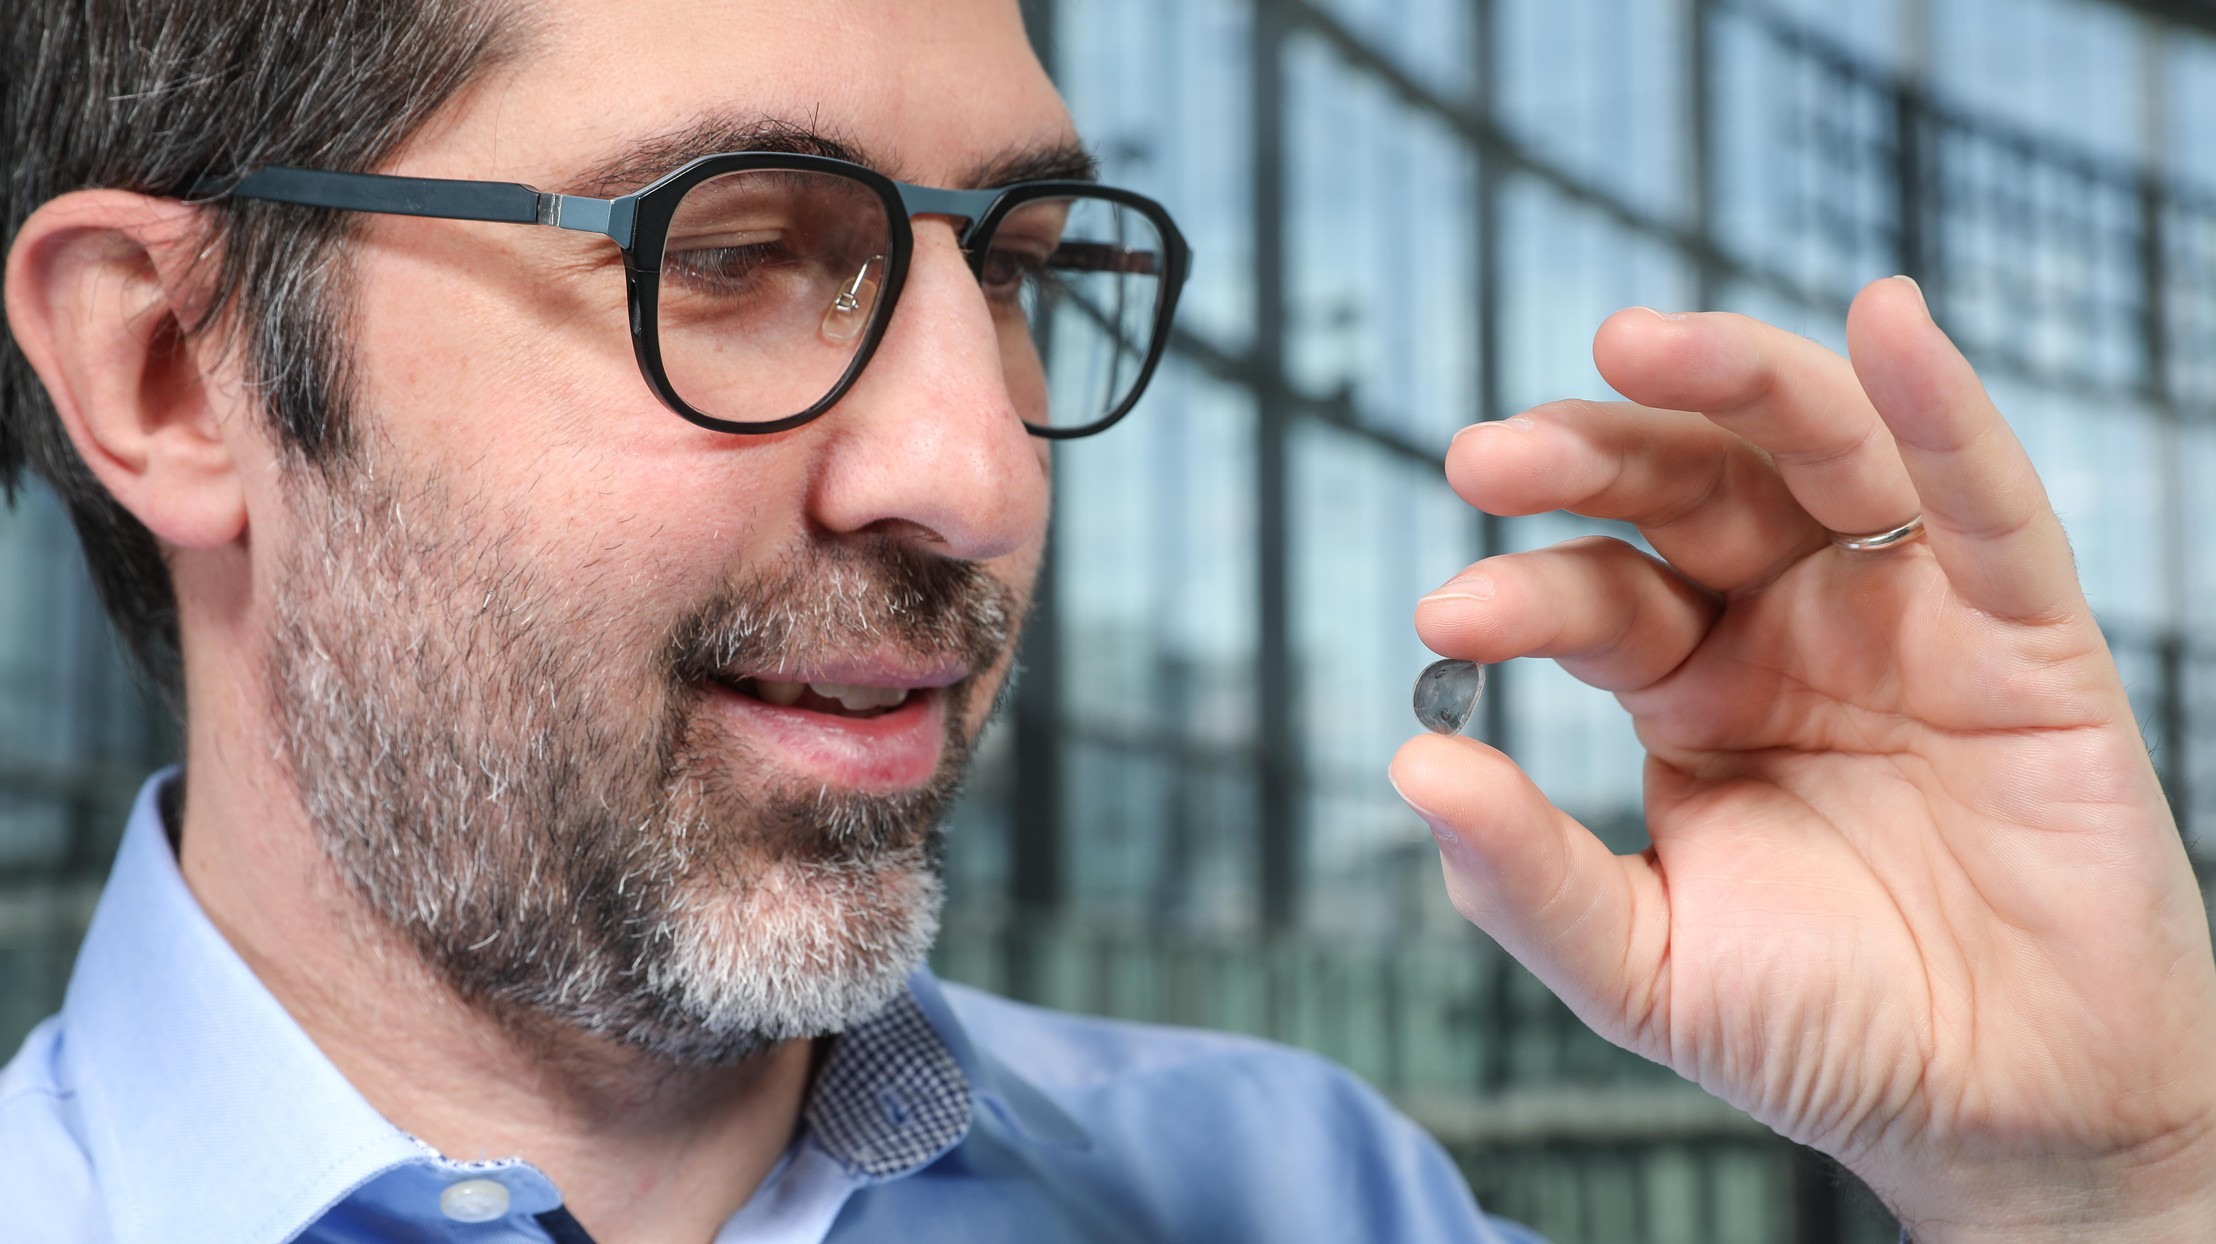 Researcher Diego Ghezzi holds a contact lens with photovoltaic dots on it.